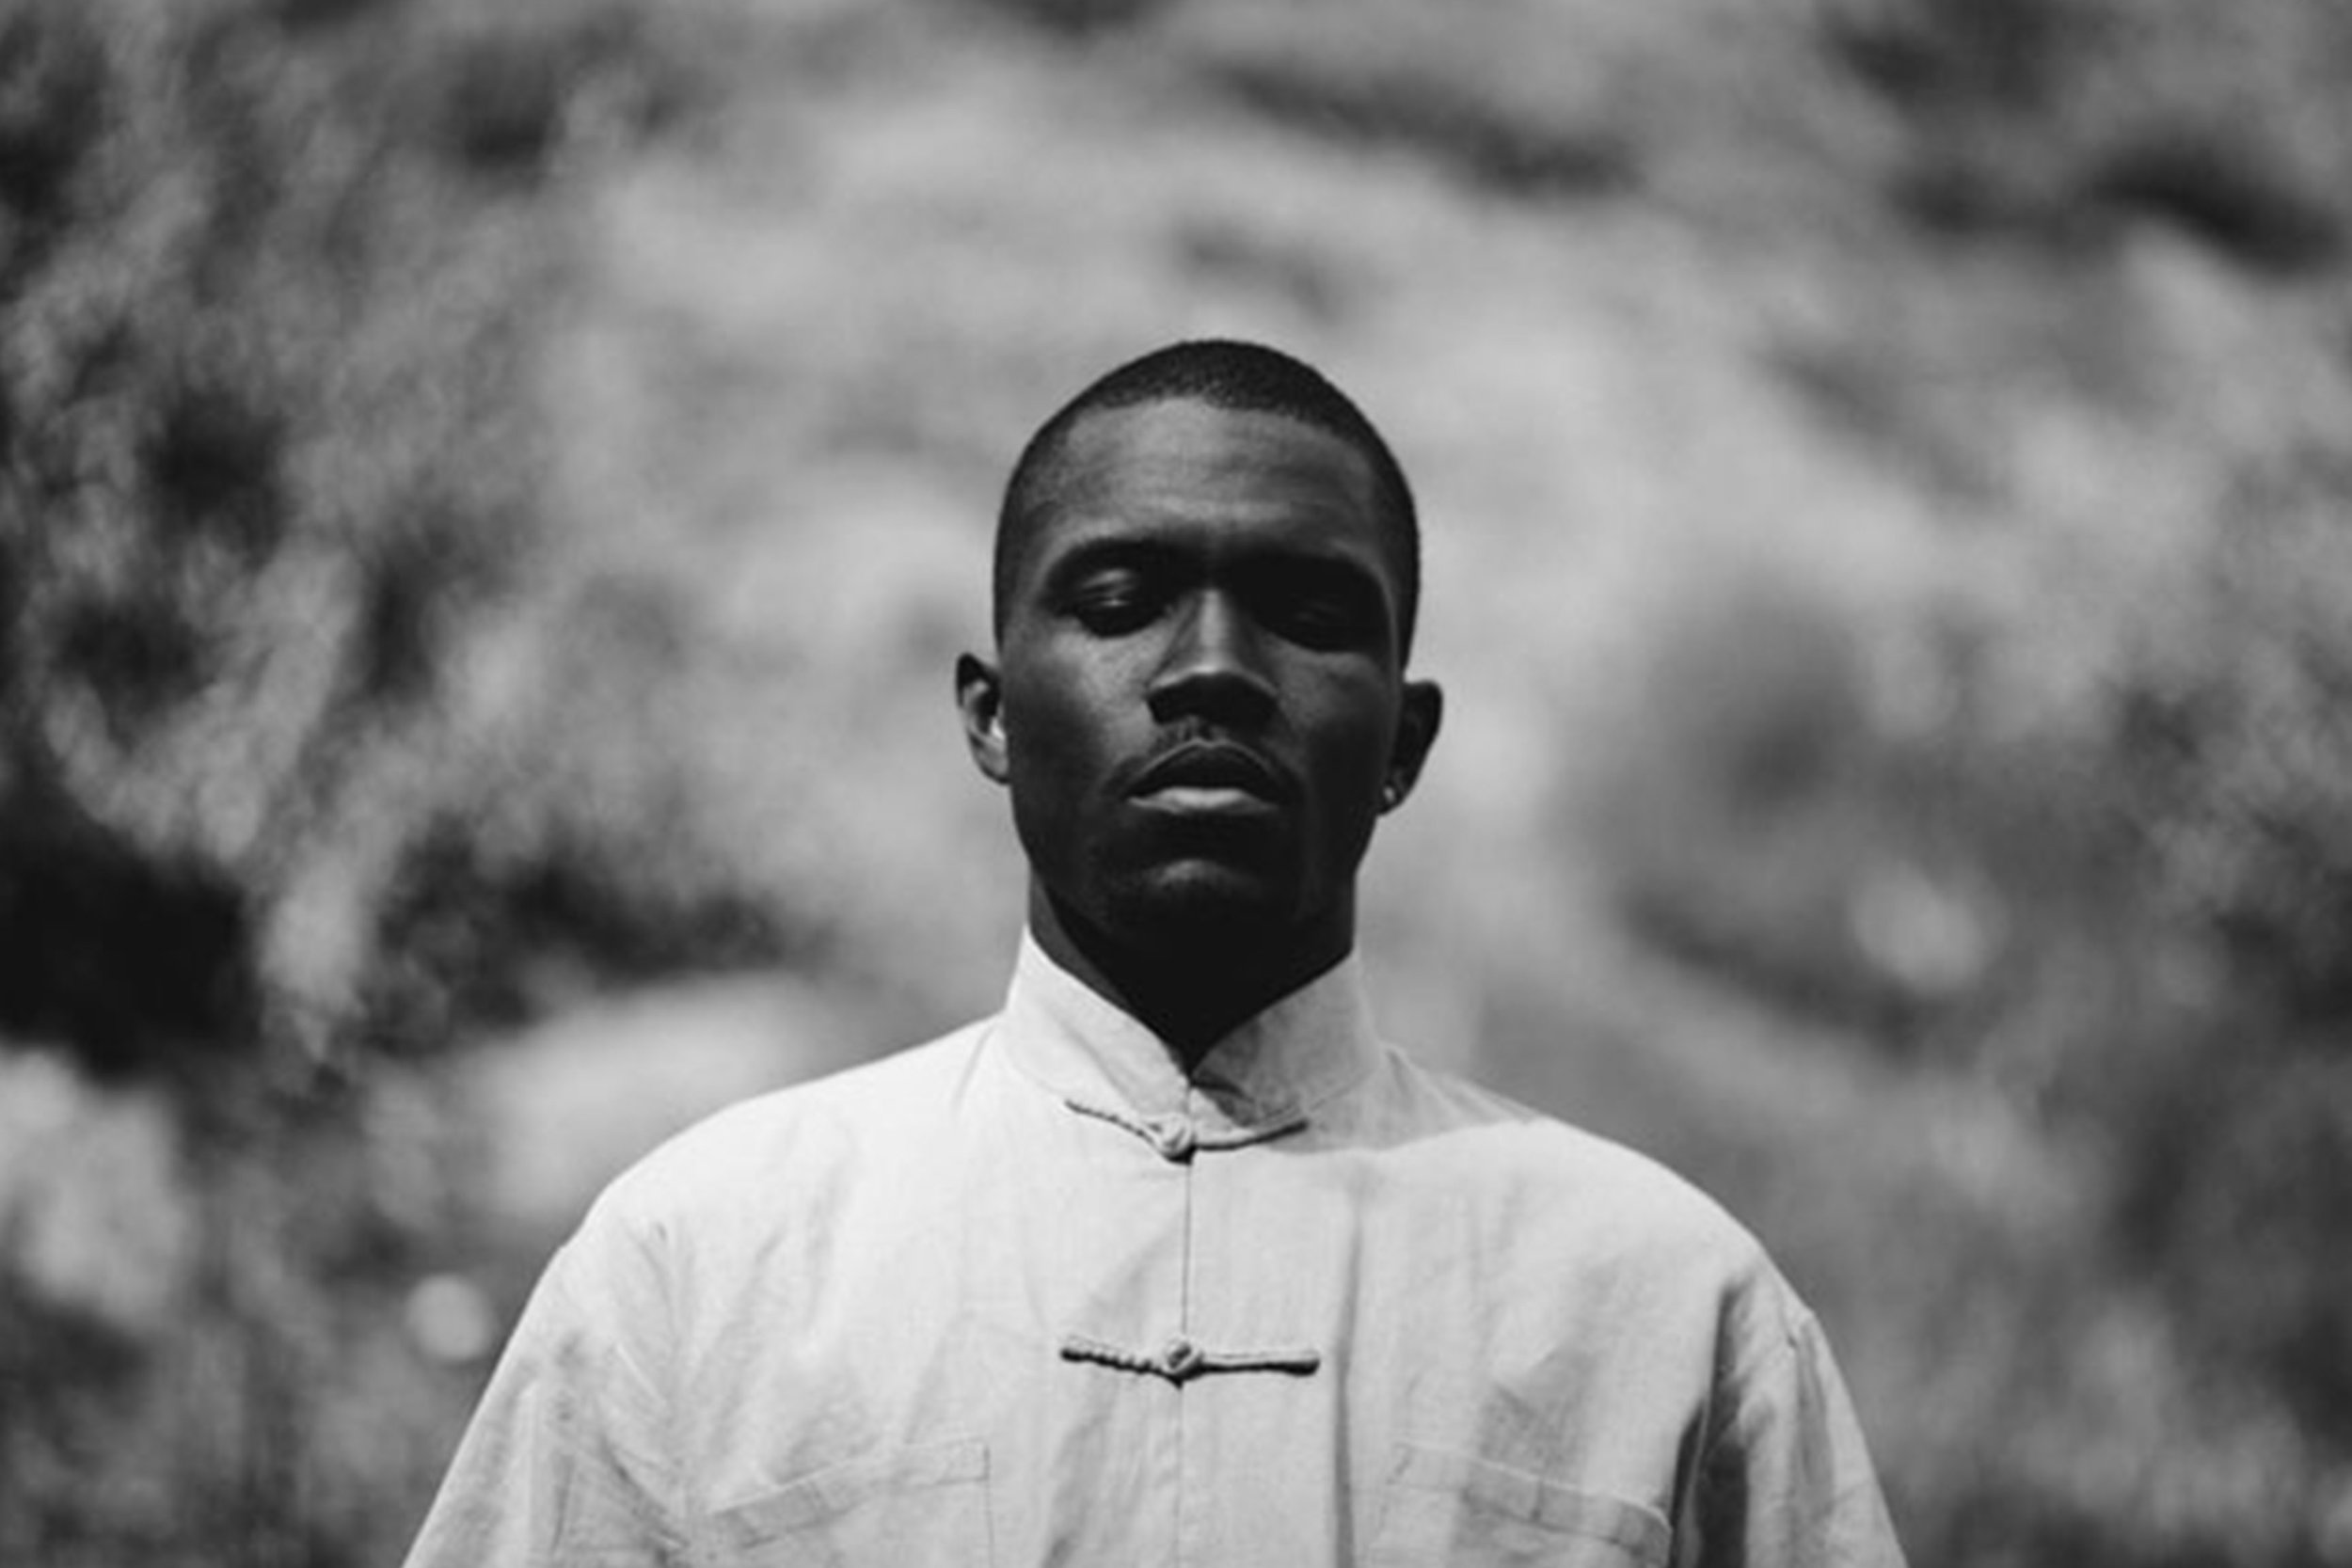 One of many great tracks from Frank Ocean's debut album, Channel Orange. His second project released earlier this year didn't quite hit the heights of tracks like this. It's going to be hard to break the 90s slow jam monopoly but if anyone can drop a future classic then it's this man.